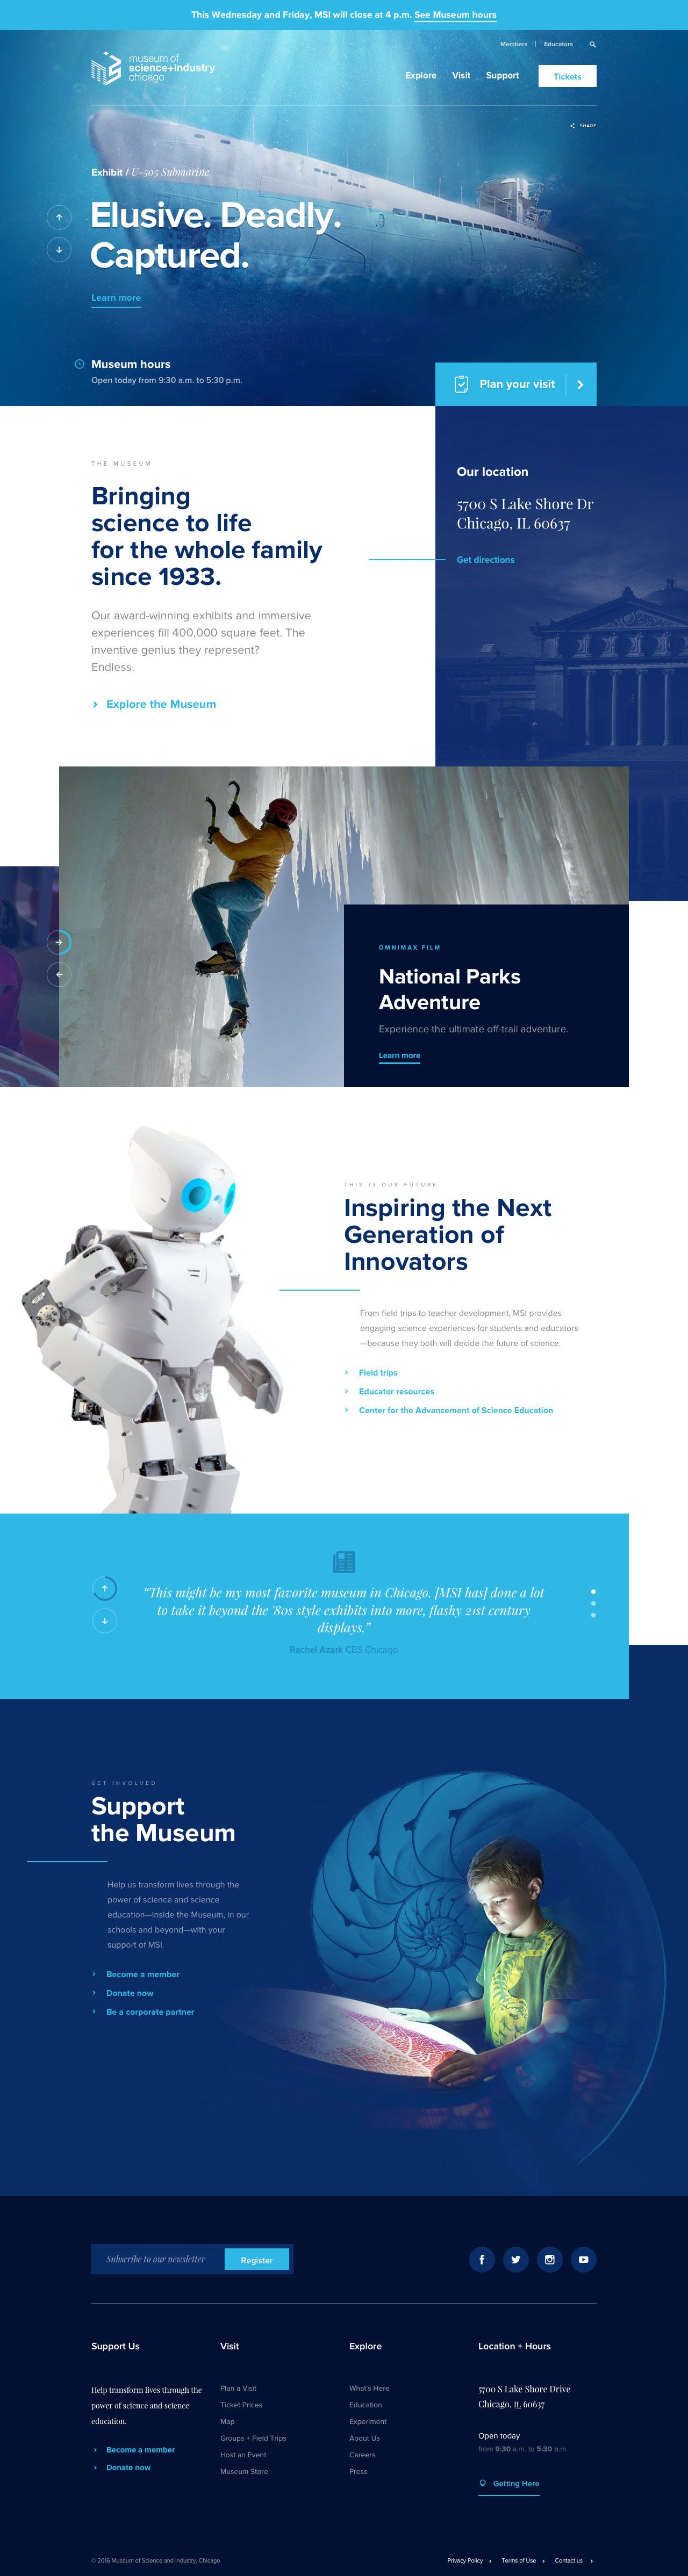 Museum Of Science And Industry Of Chicago Web Design Inspiration Topdesigninspiration Web Design Web Layout Design Web Design Inspiration